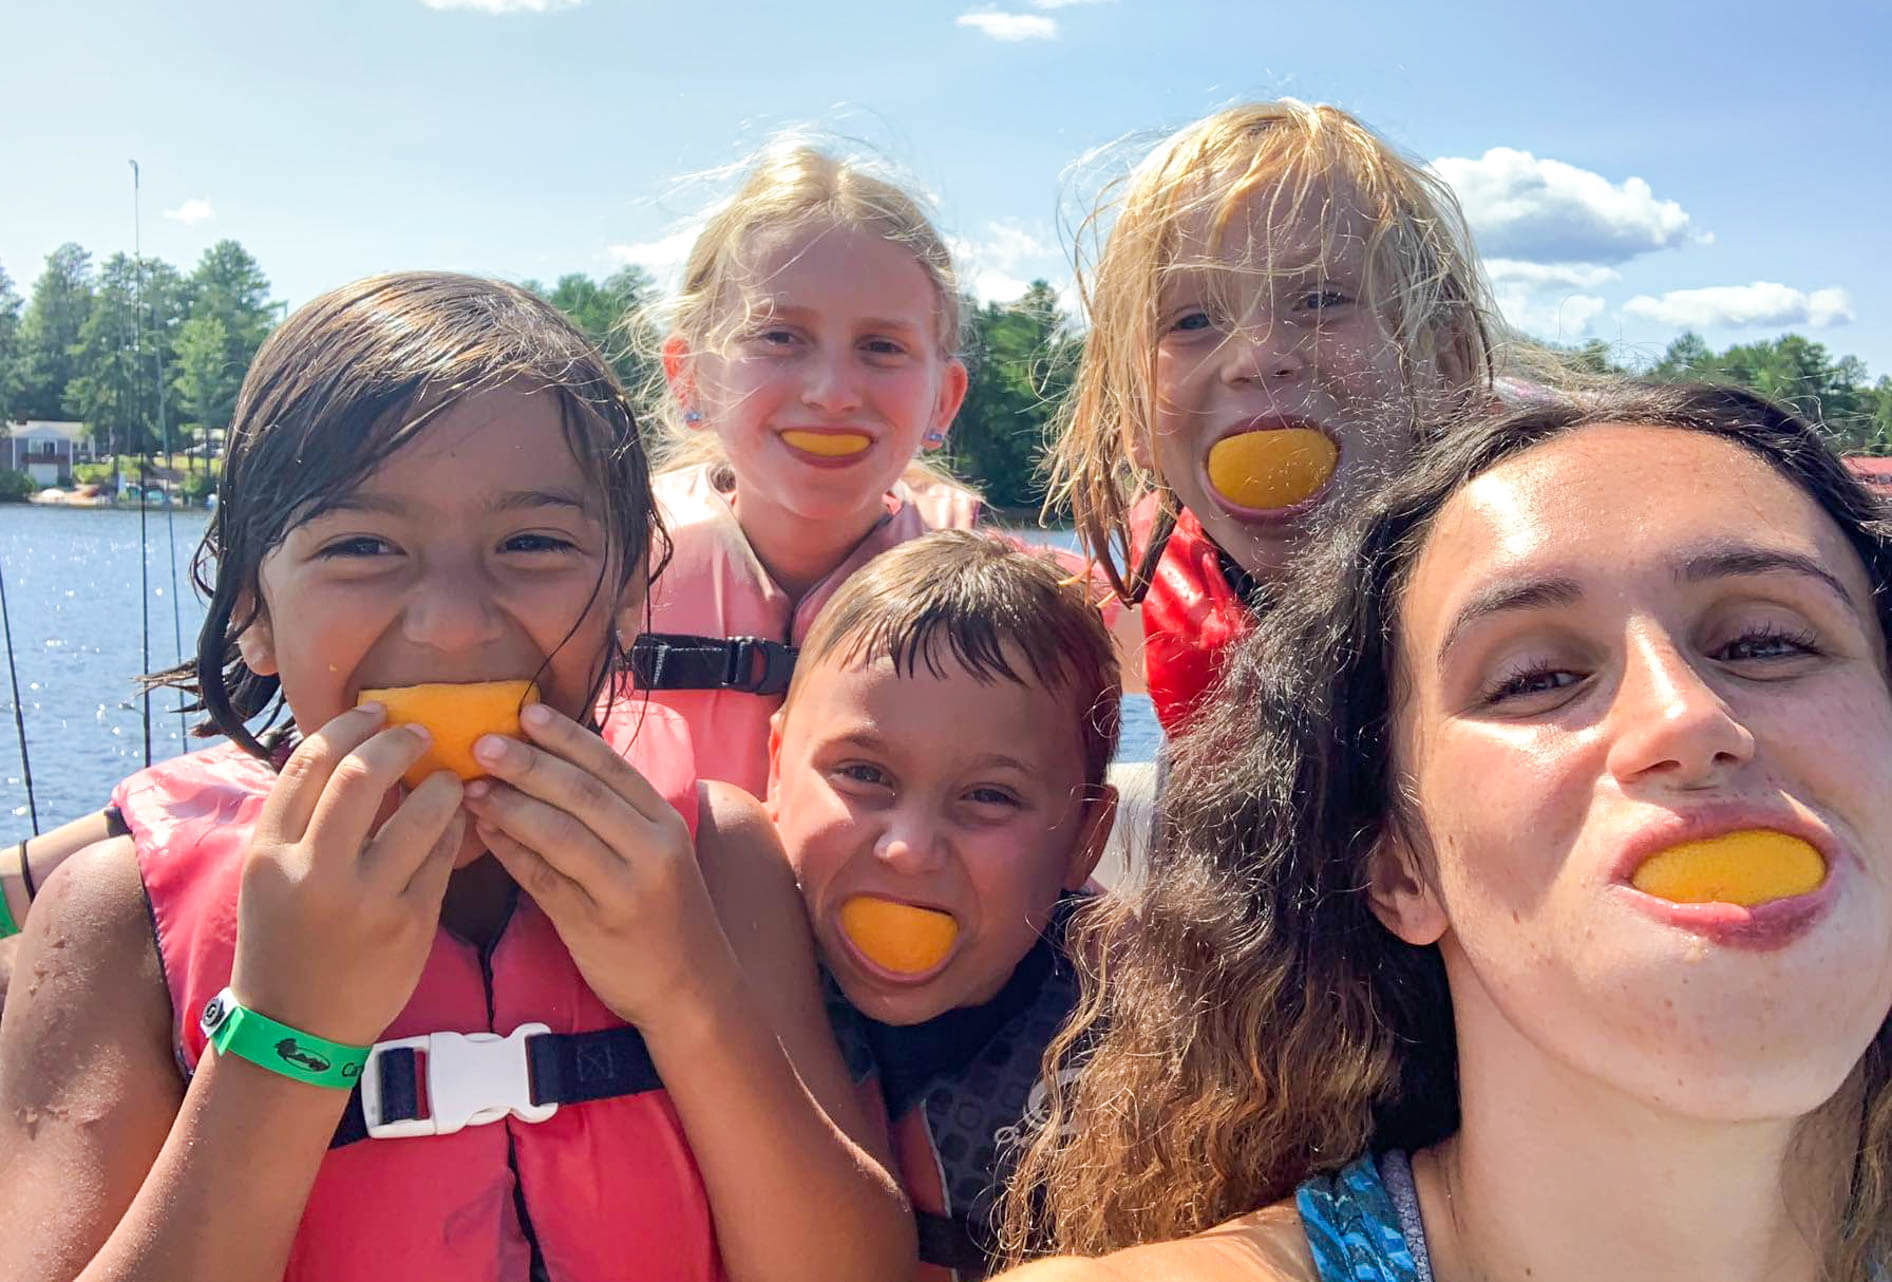 Campers hold orange slices in their mouths